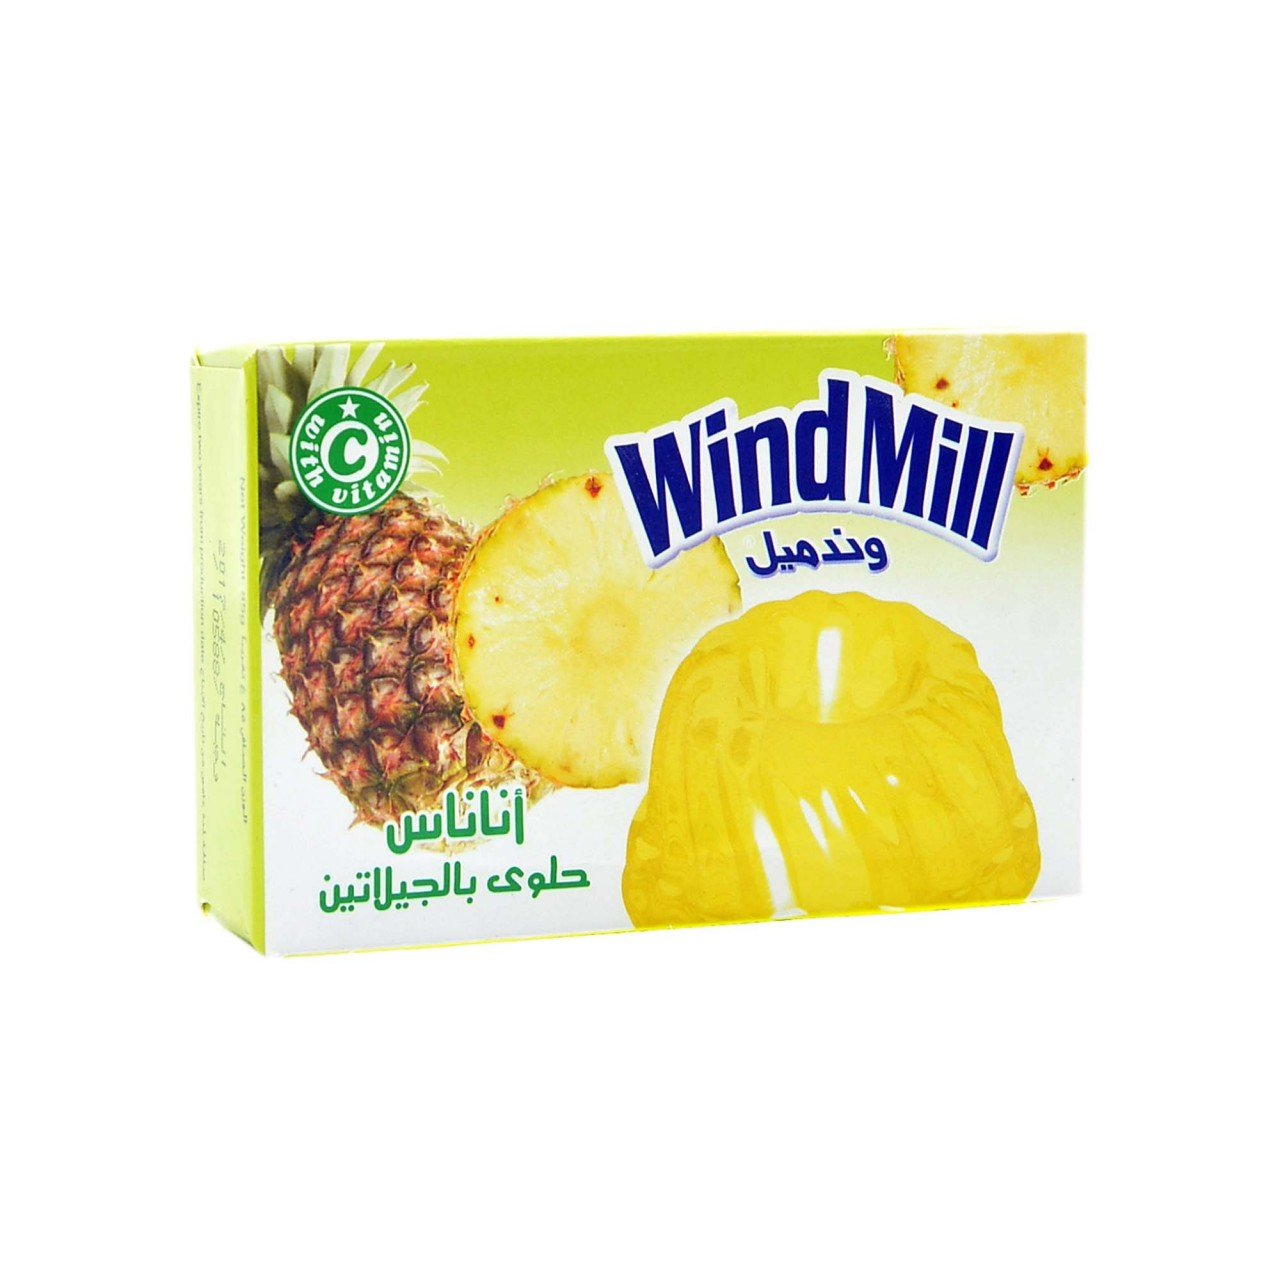 جيلية حلال أناناس ويند ميل | jello halal pineapple windmill